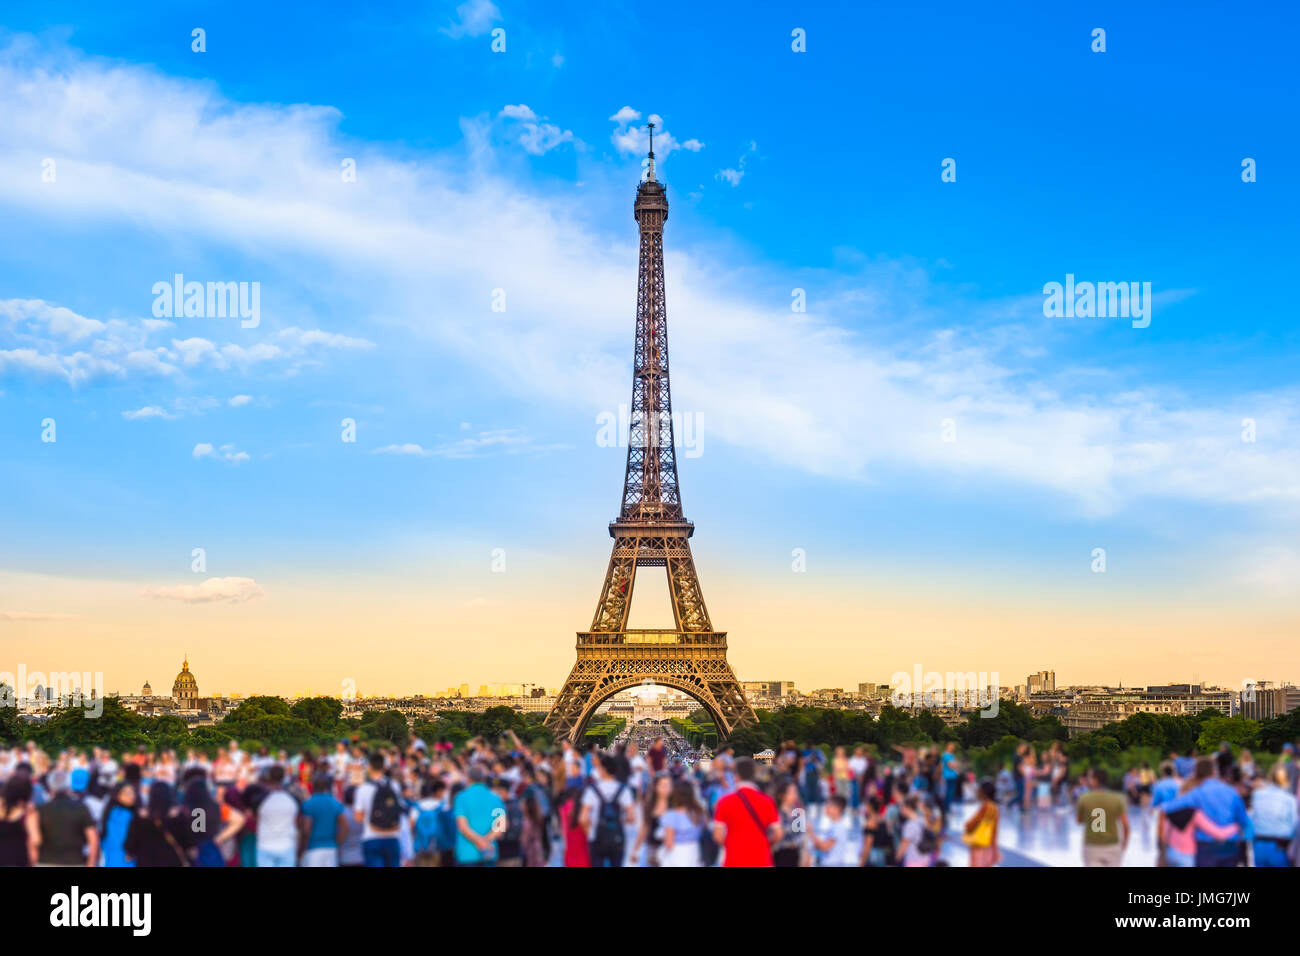 Colorful large group of unrecognizable people blurred in front of Paris Eiffel Tower at evening light (copy space) - Stock Image